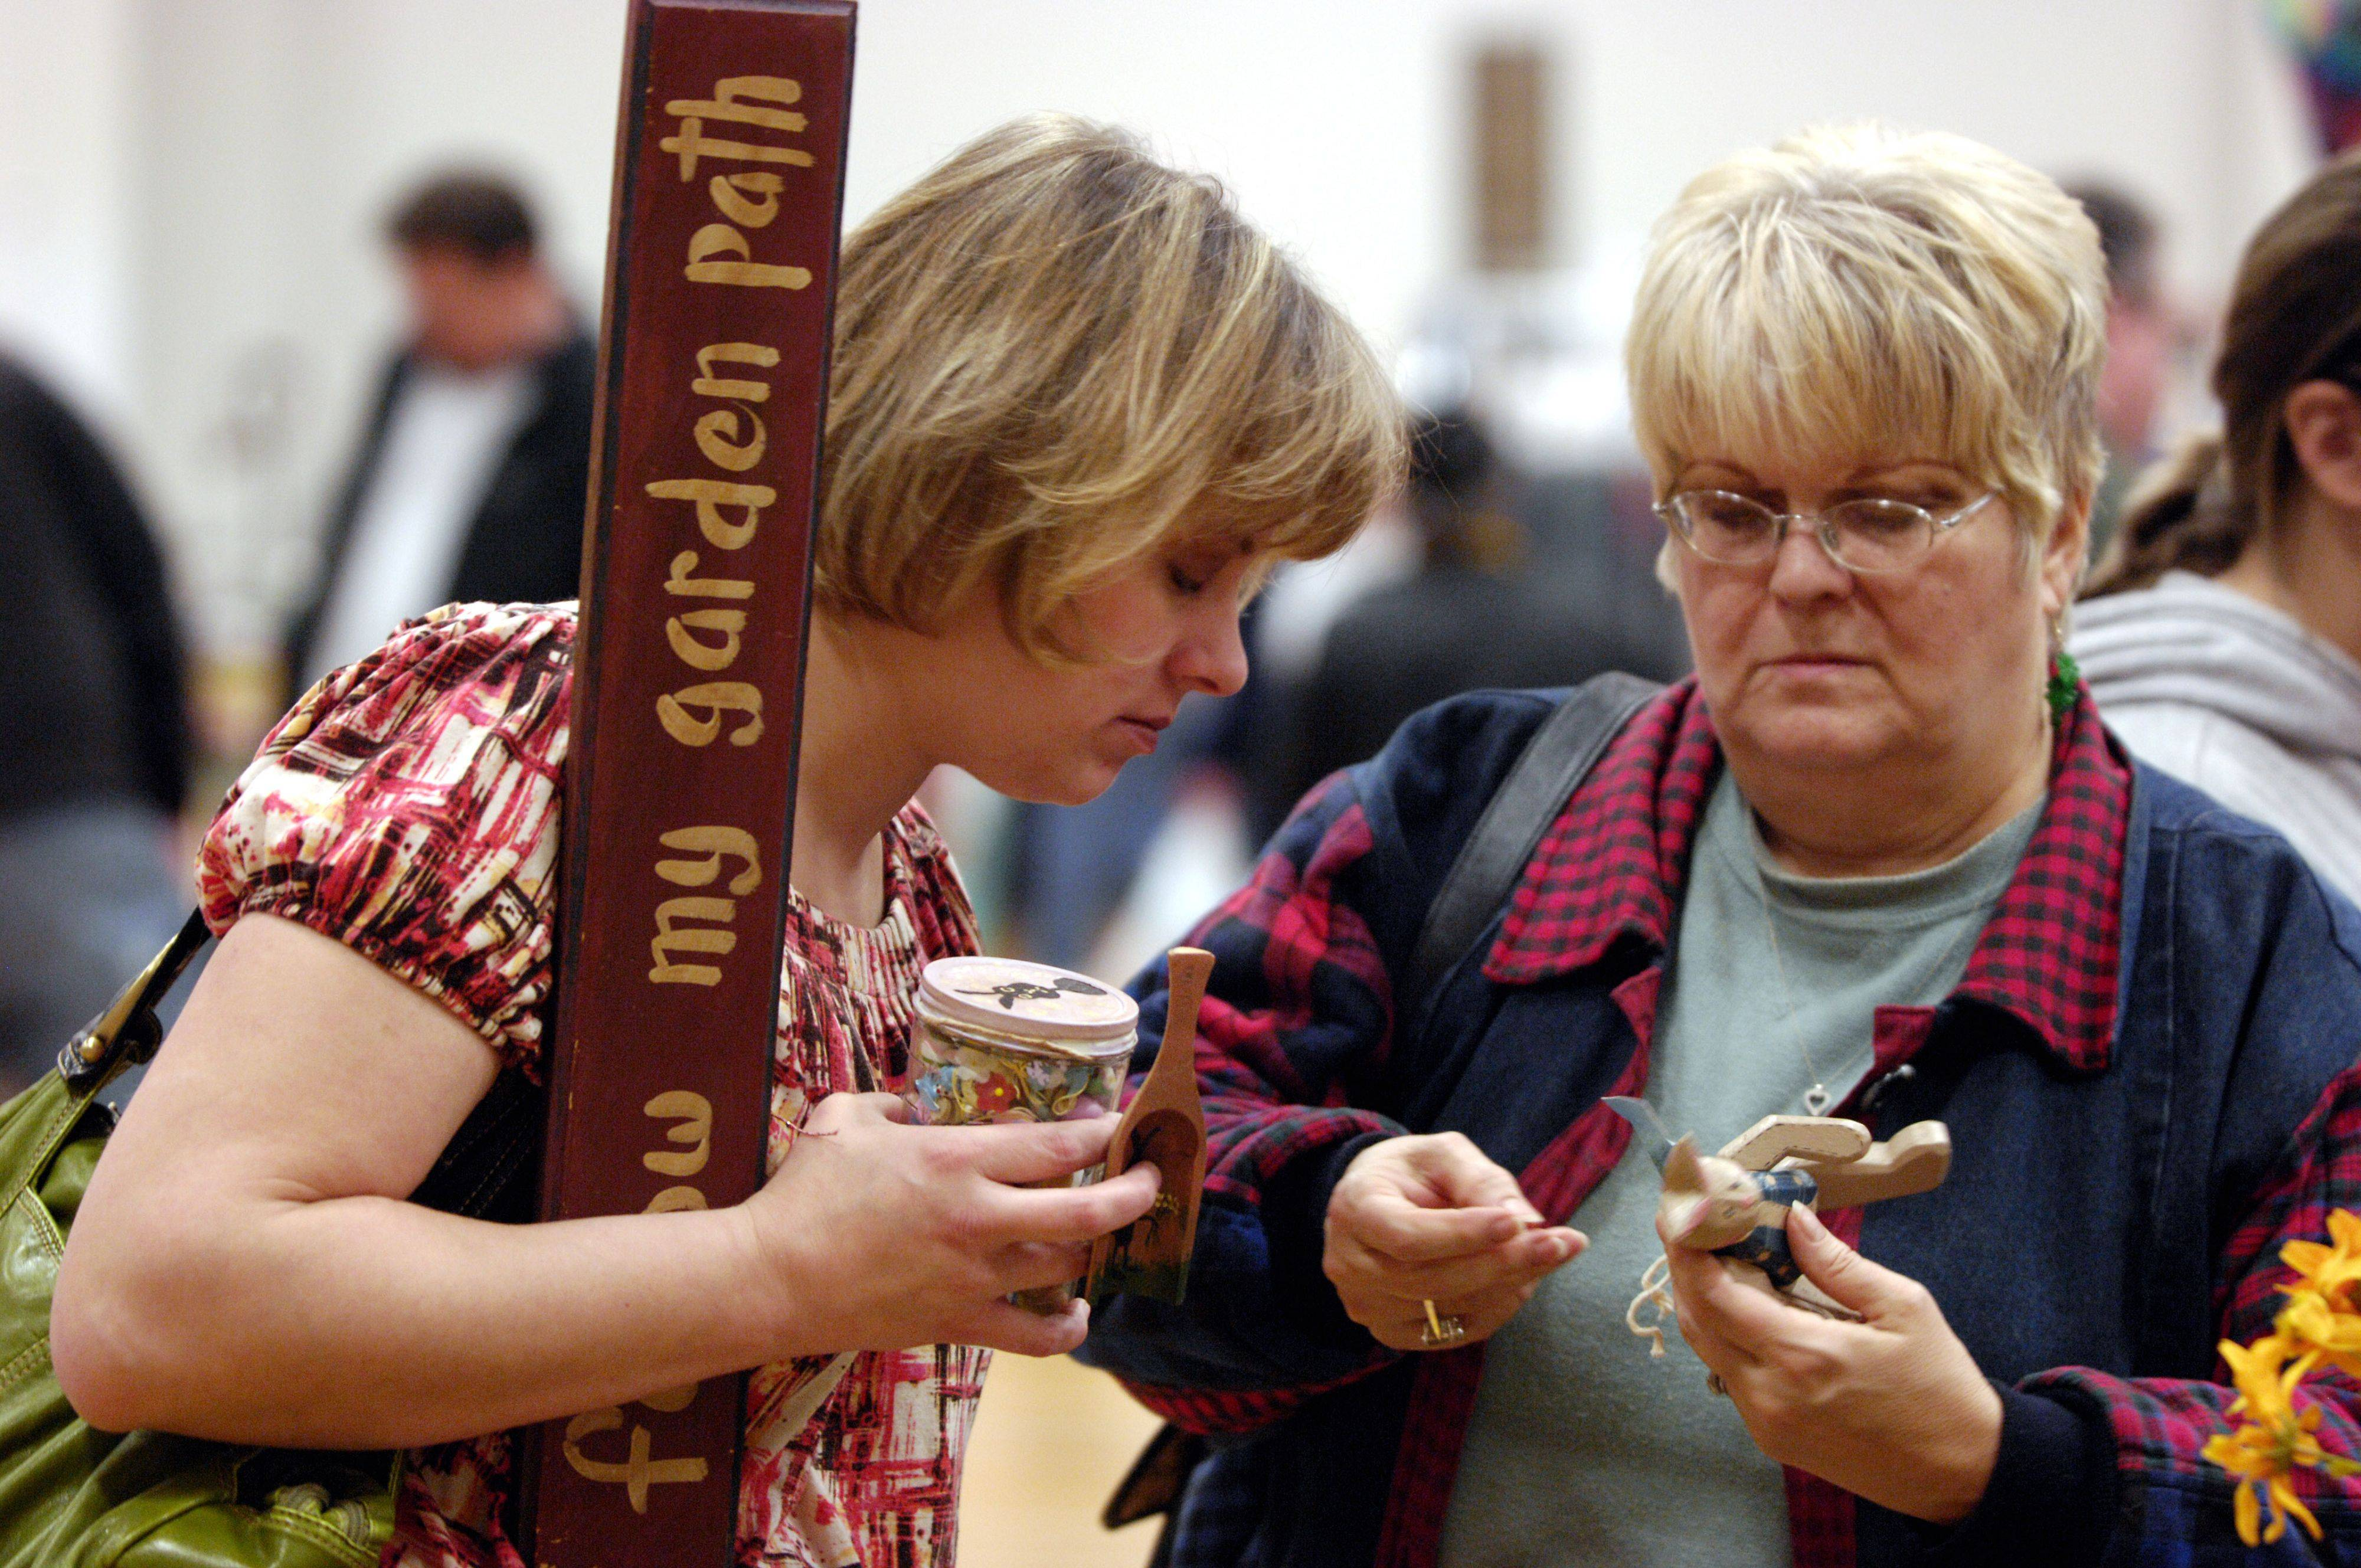 Sue Nieciecki of Schuamburg and her mother-in-law Judy Nieciecki of Prospect Heights look for deals at the 38th Collectibles, Craft and Flea Market at Elgin High School.